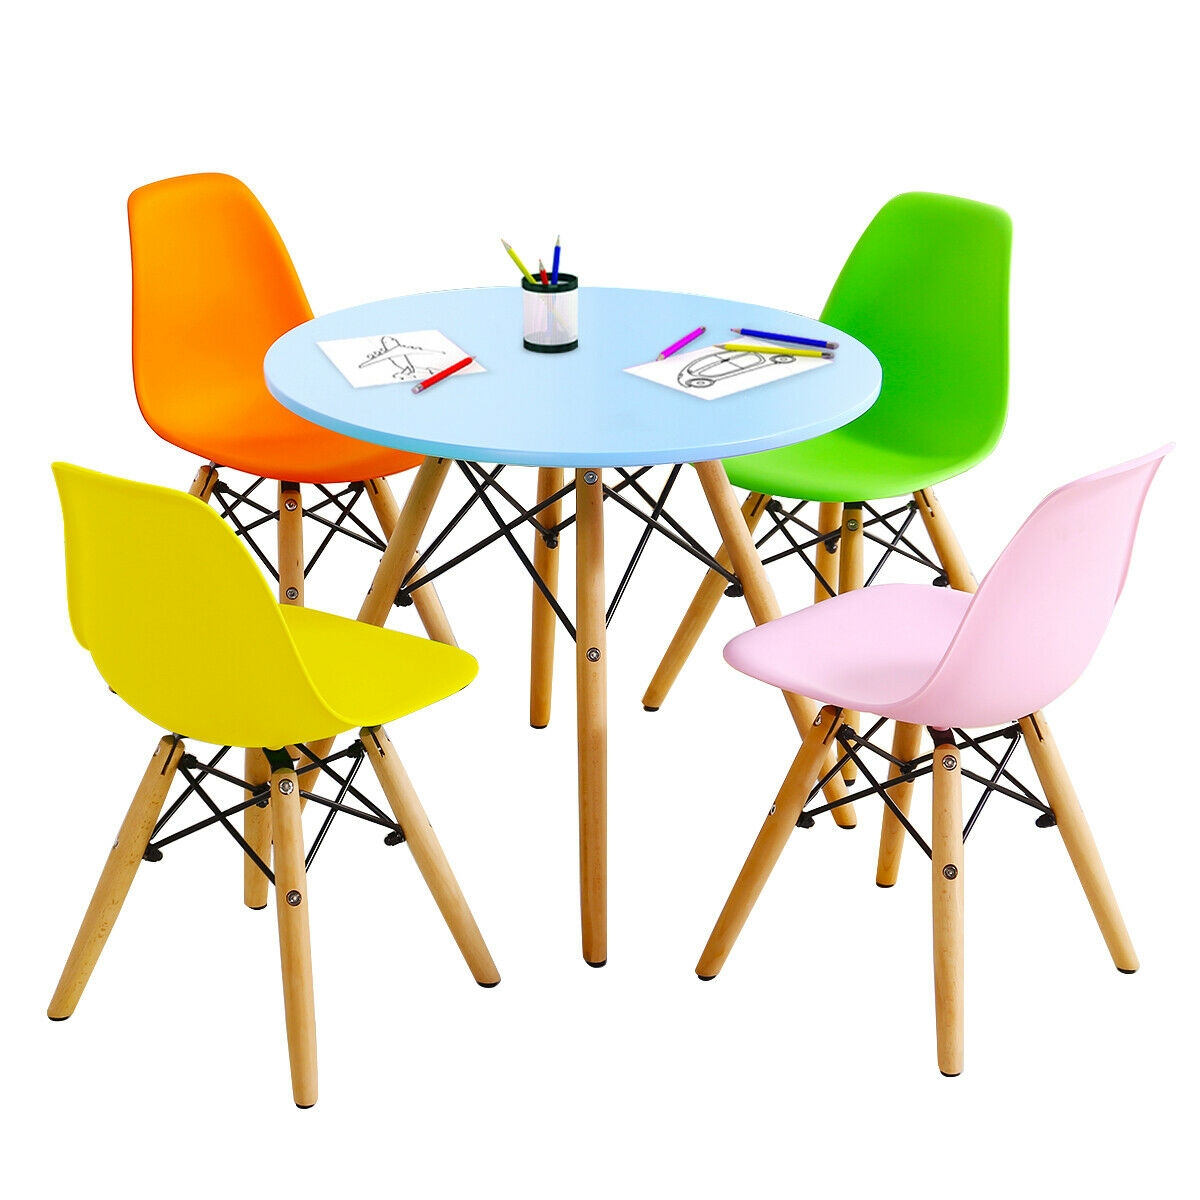 5 Piece Kids Colorful Set with 4 Armless Chairs